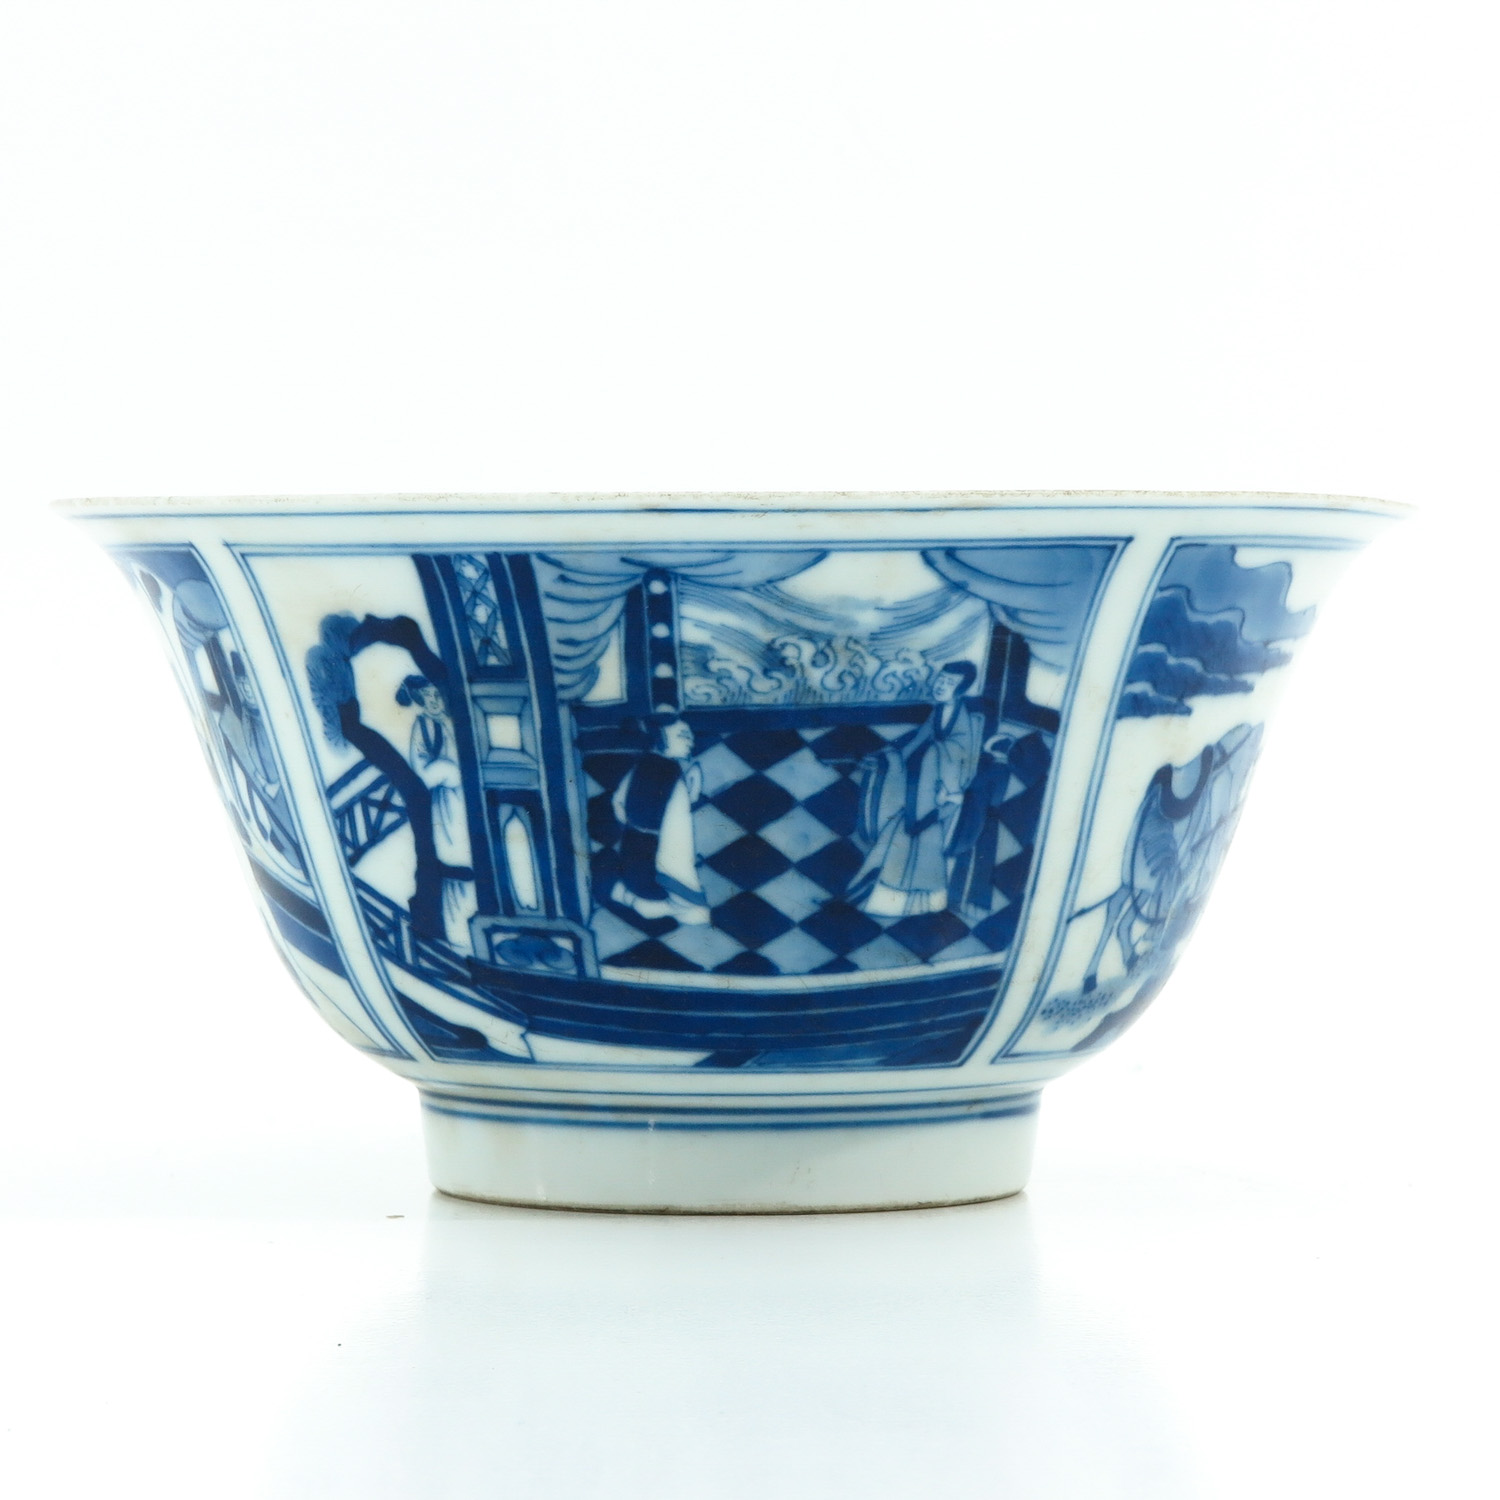 A Blue and White Flared Rim Dish - Image 4 of 10